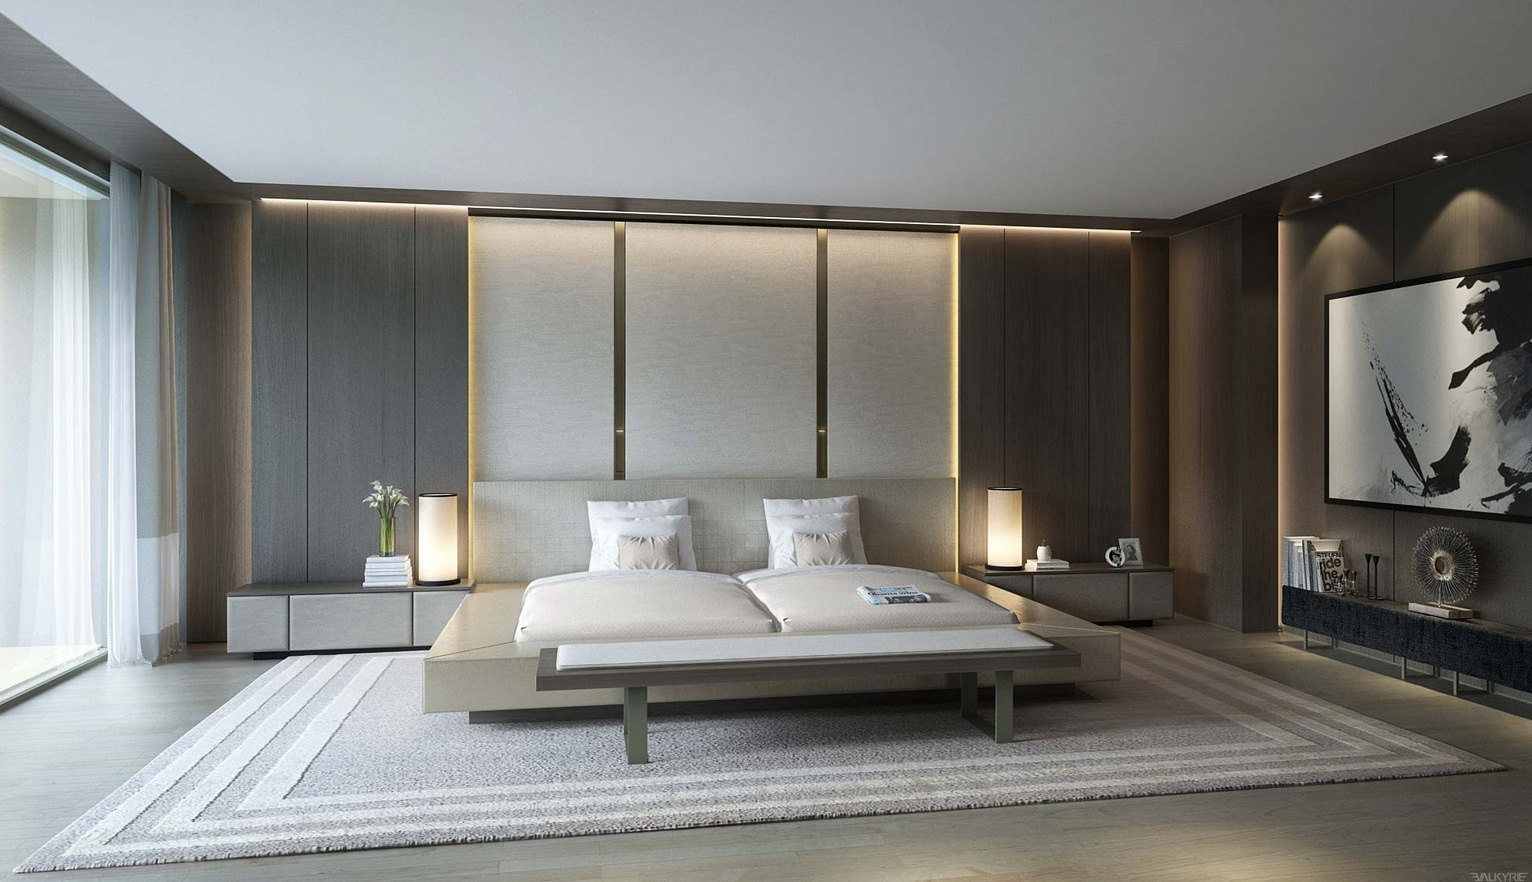 21 cool bedrooms for clean and simple design inspiration for Bedroom designs